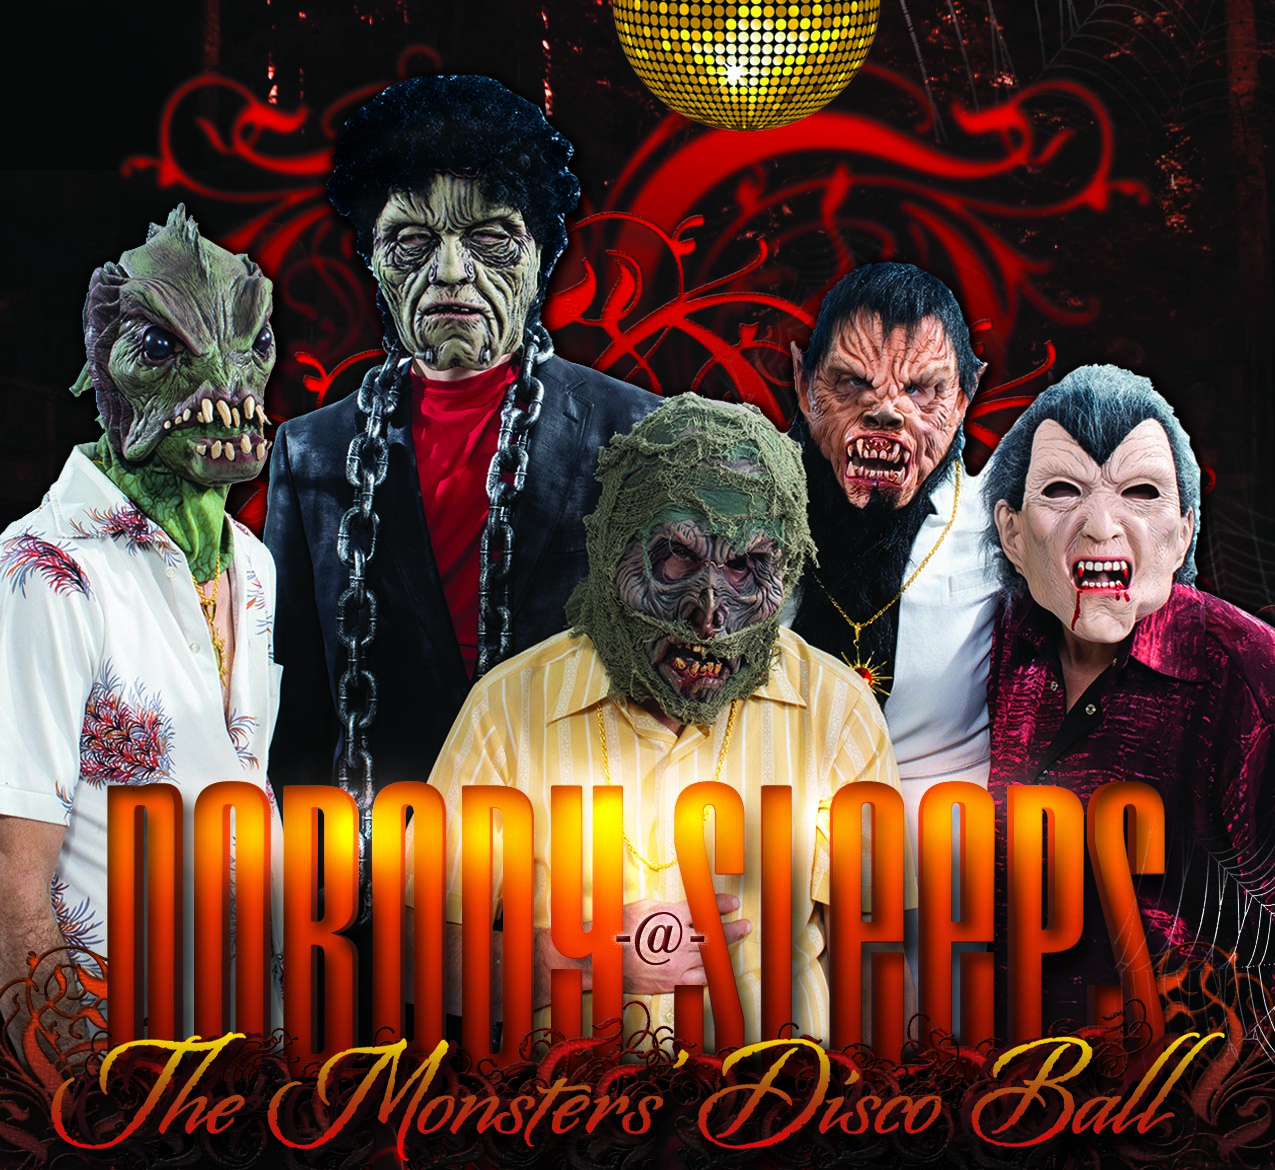 Monsters Disco Ball Image 2019